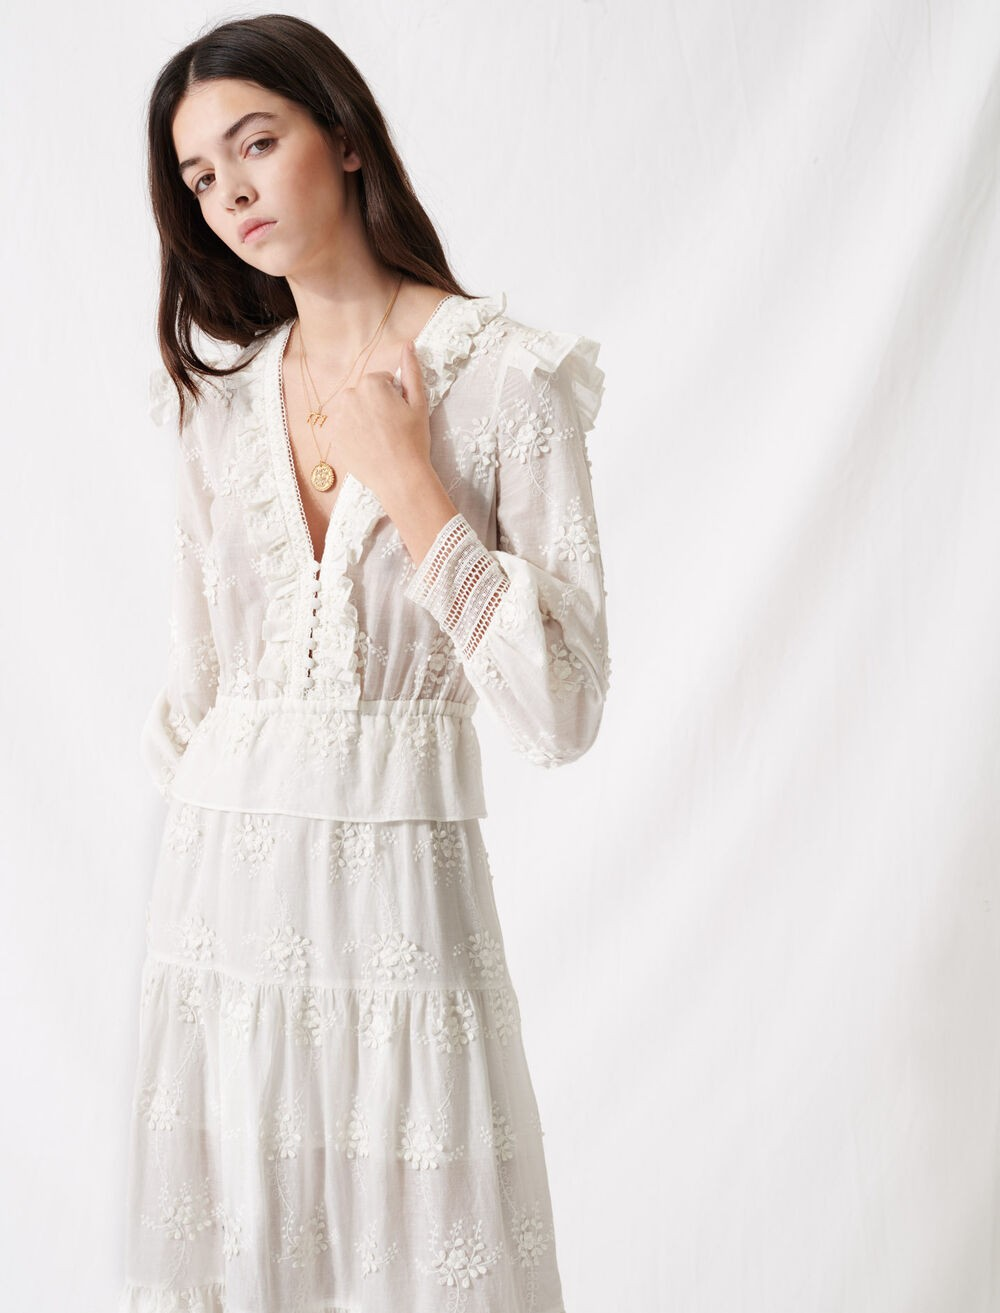 ecru dress with ruffles and embroidery